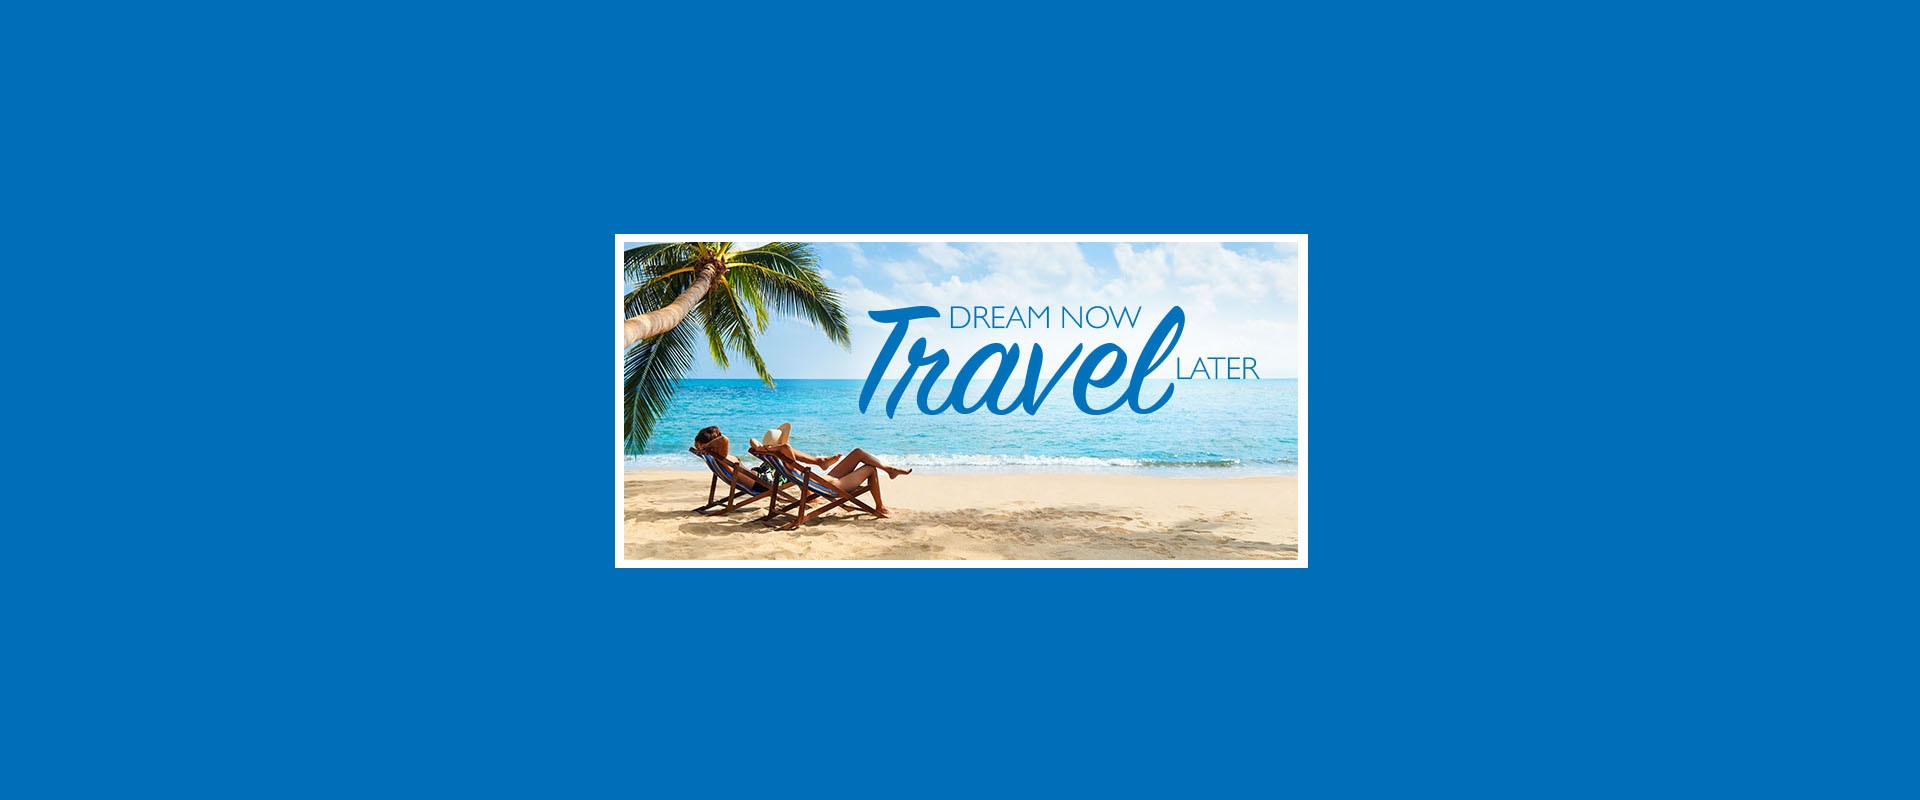 Dream-Now-Travel-Later-May-5-Banner